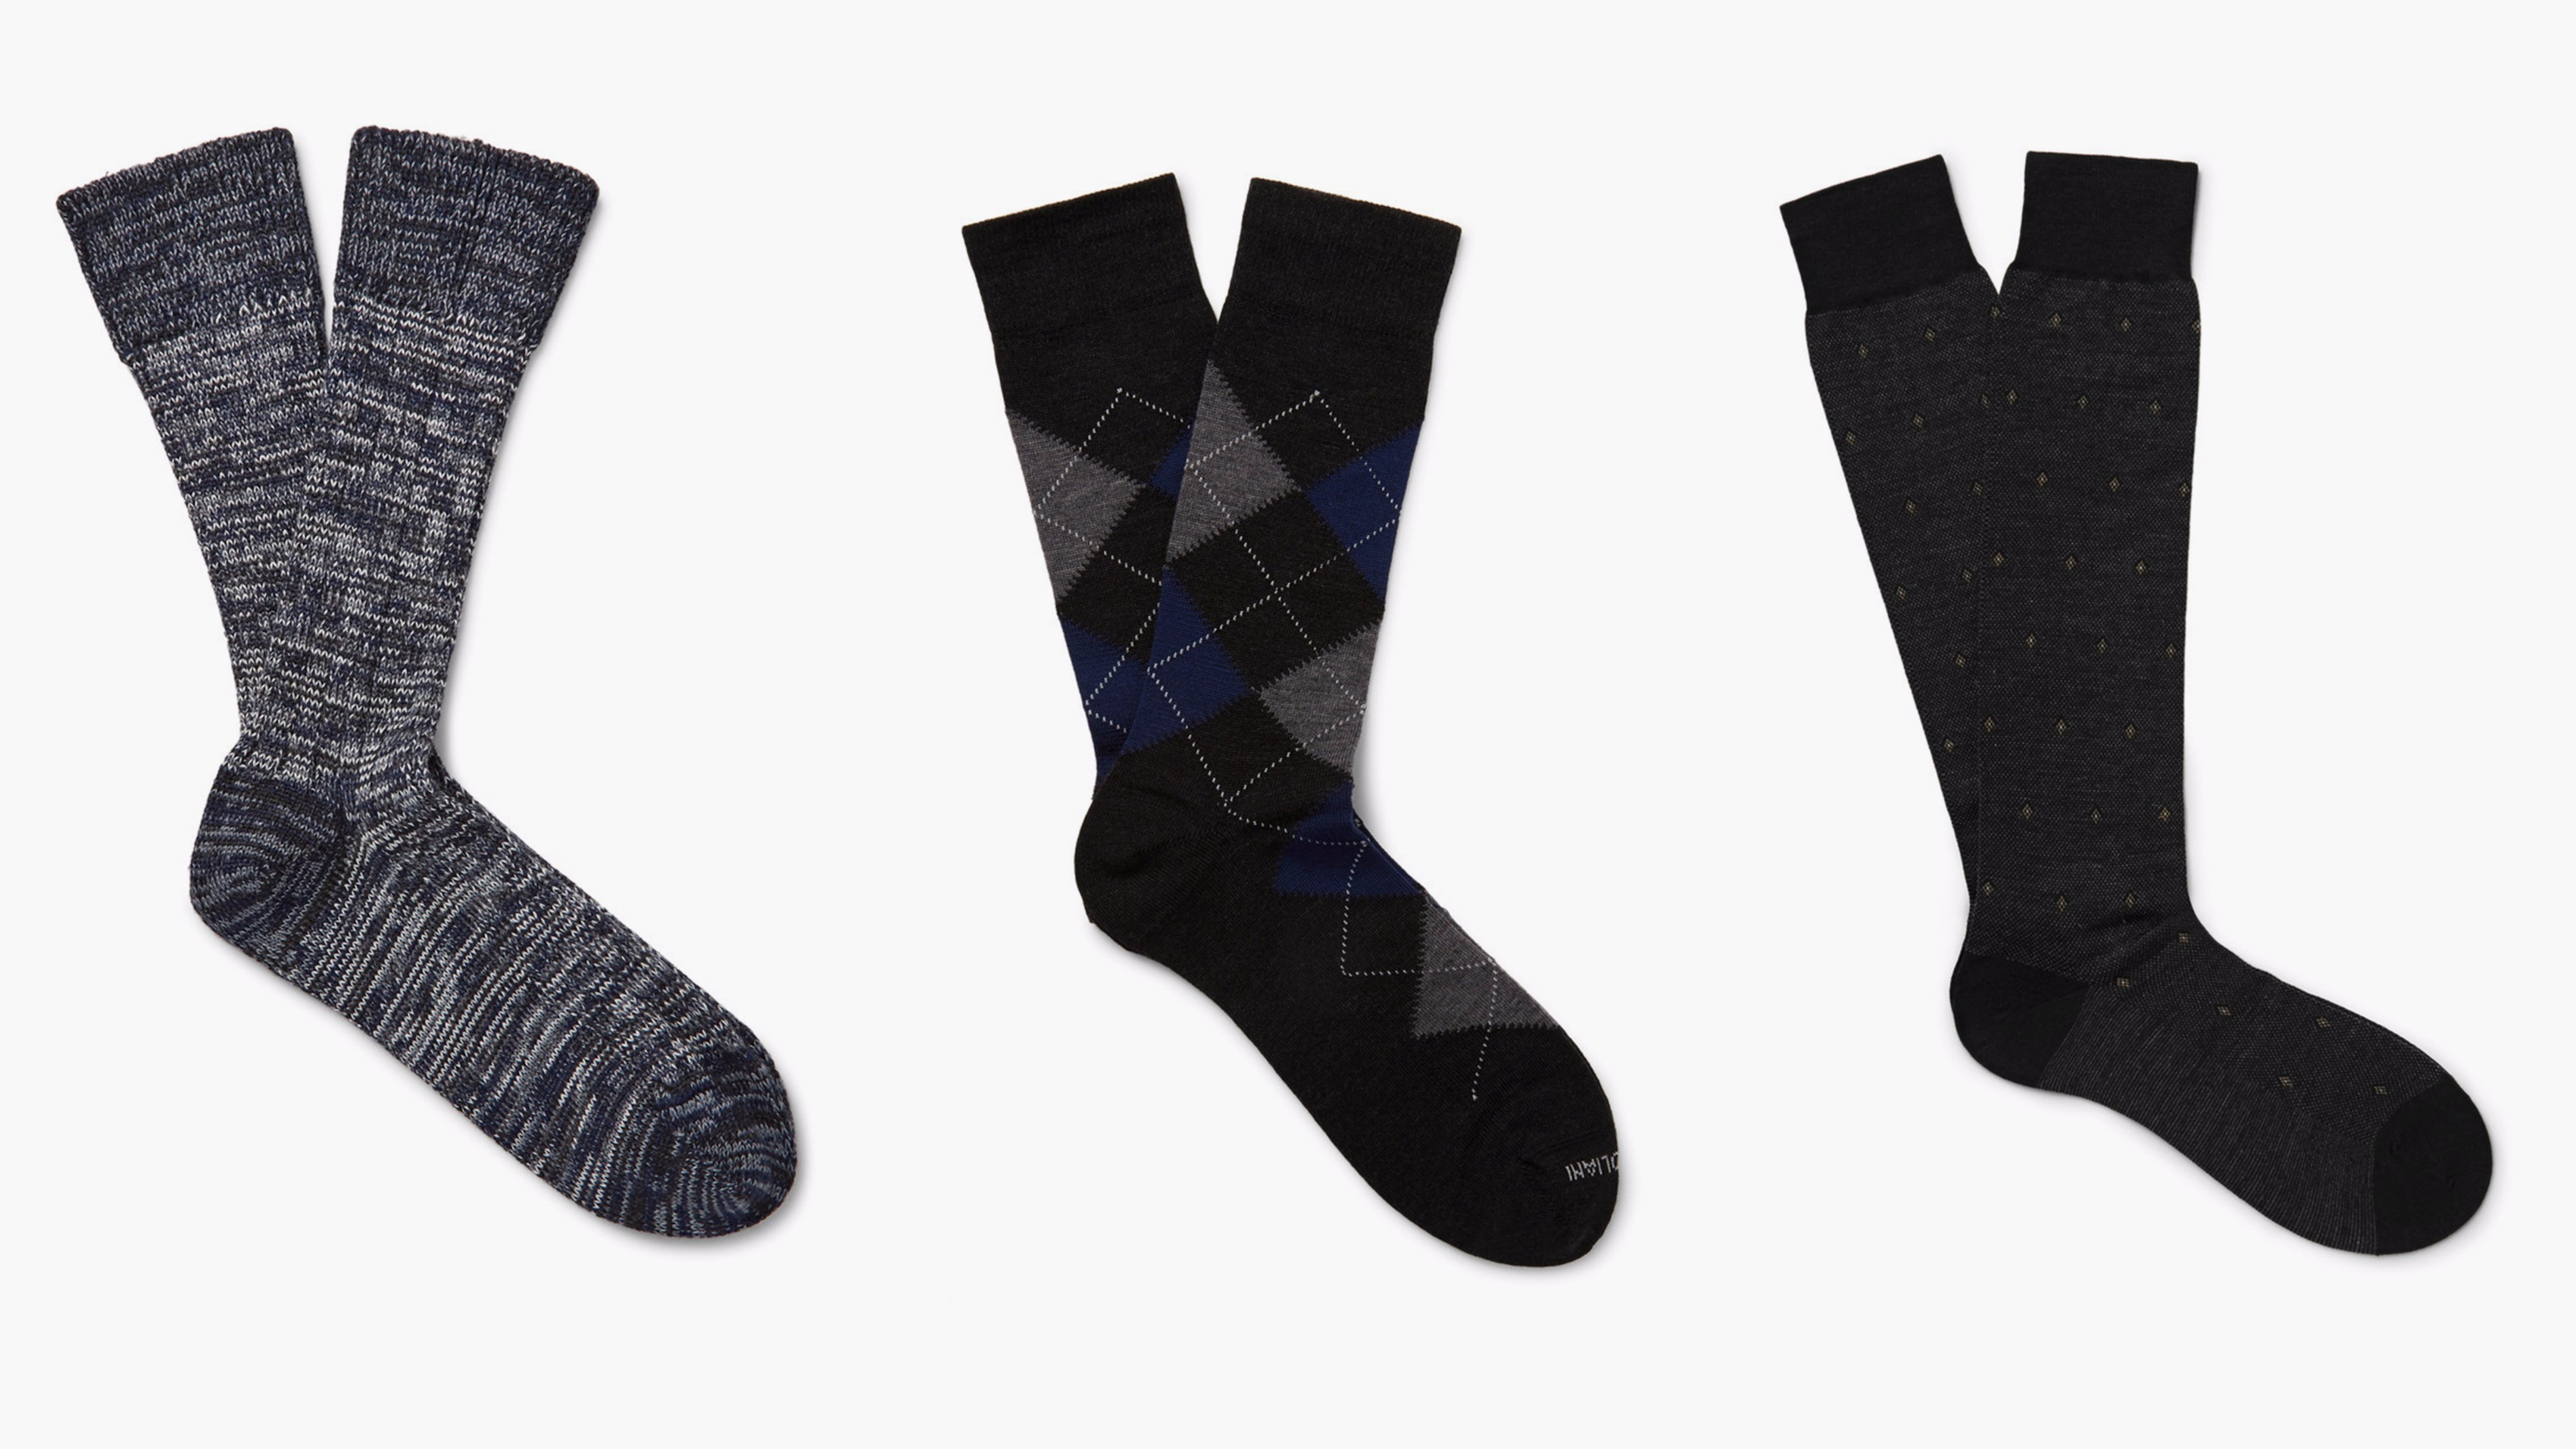 Wool socks by The Worker's Club, Marcoliani, and Pantherella